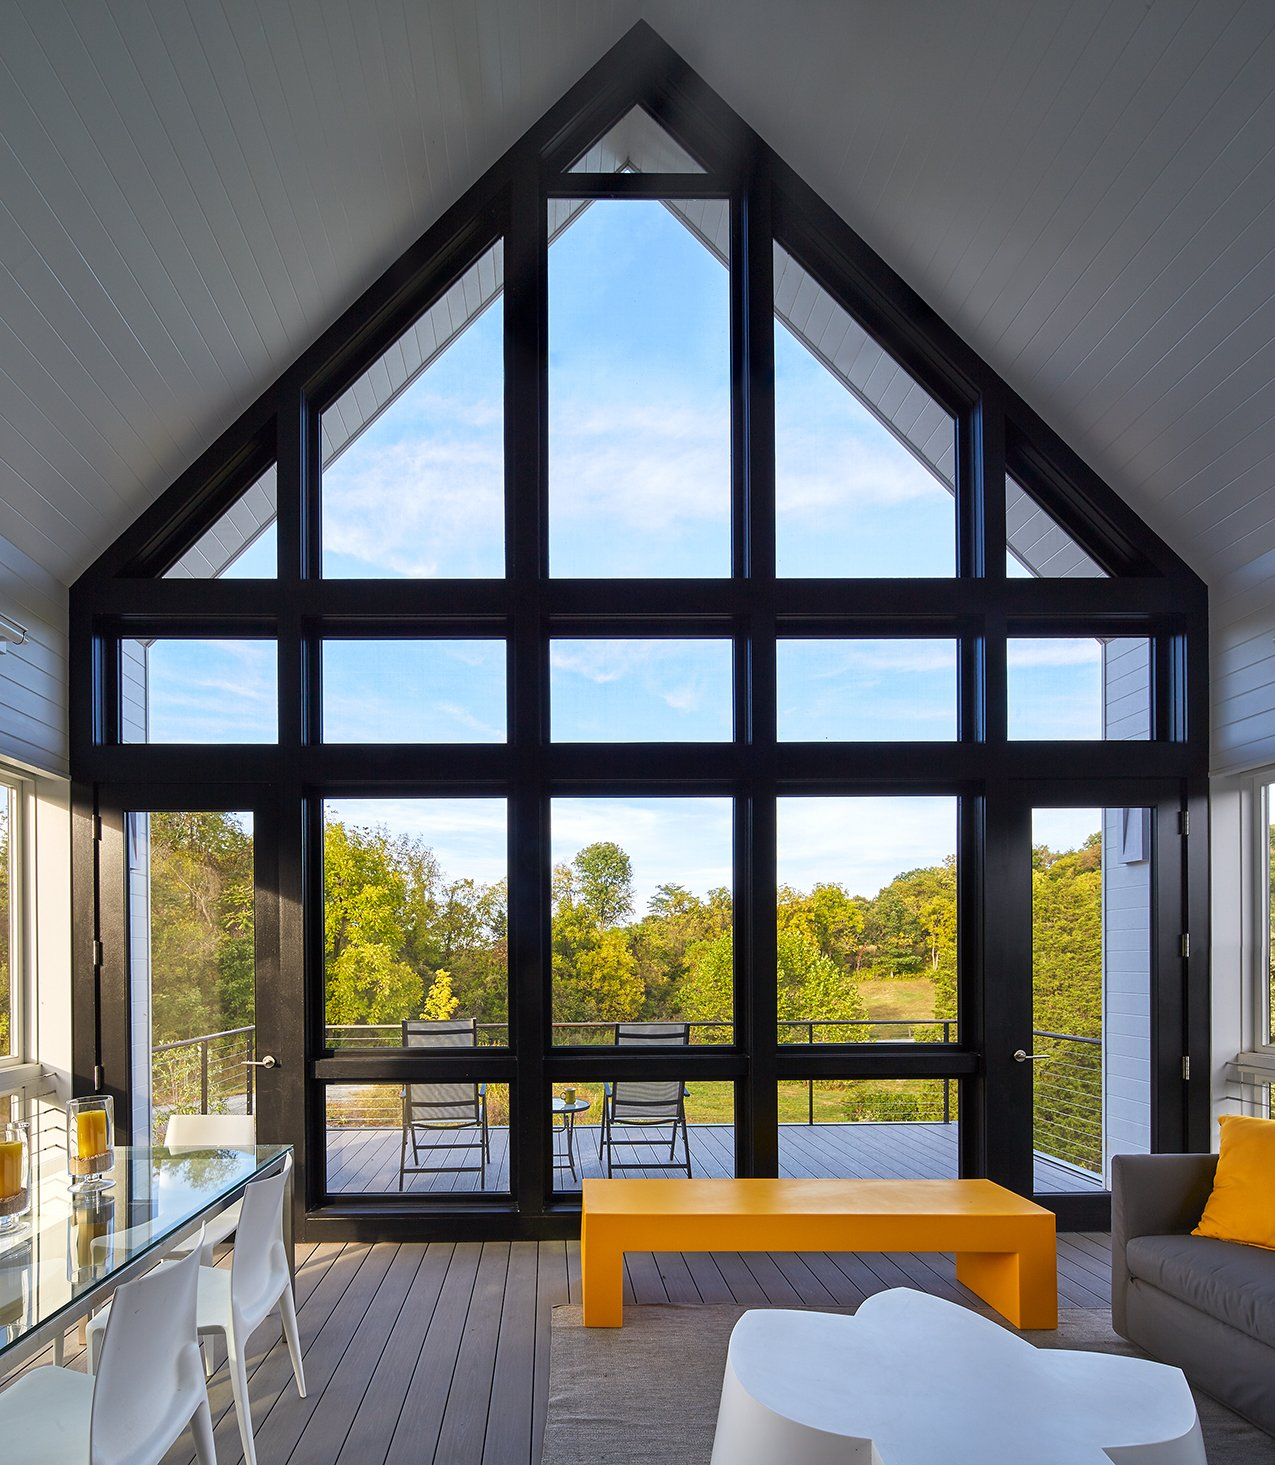 """This large screened porch is a favorite destination of the homeowner. """"She spends a lot of time on the screened porch because it straddles the meadow and the mountains,"""" said Wiedemann. """"And it's directly accessible from the living area and the kitchen."""" Tagged: Windows and Metal.  Best Windows Photos from A Modern Farmhouse Blends Community-Minded Living With the Country Landscape"""